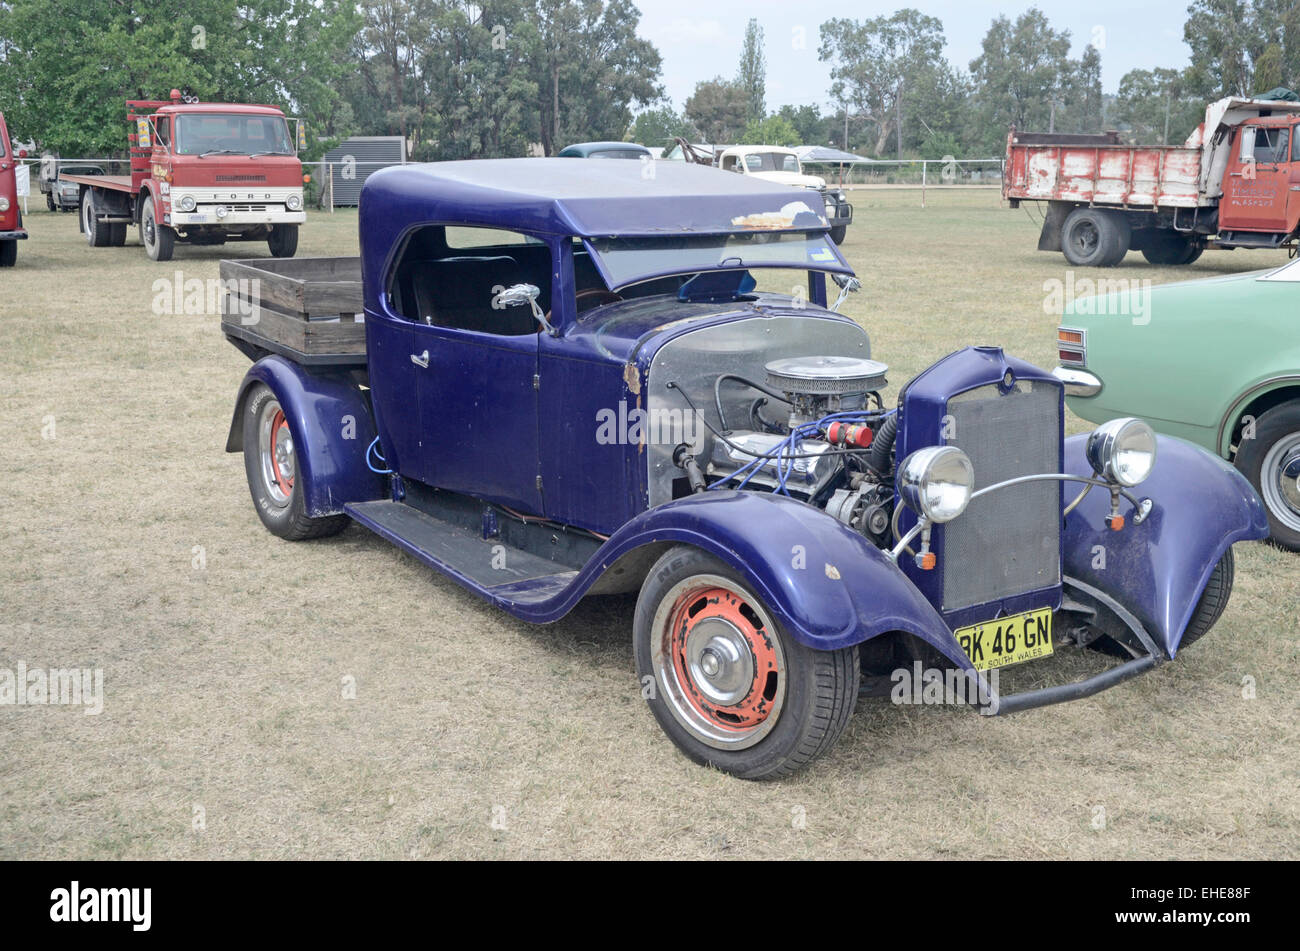 Hot Rod Ford pick up truck in need of some TLC on display Kootingal Australia - Stock Image